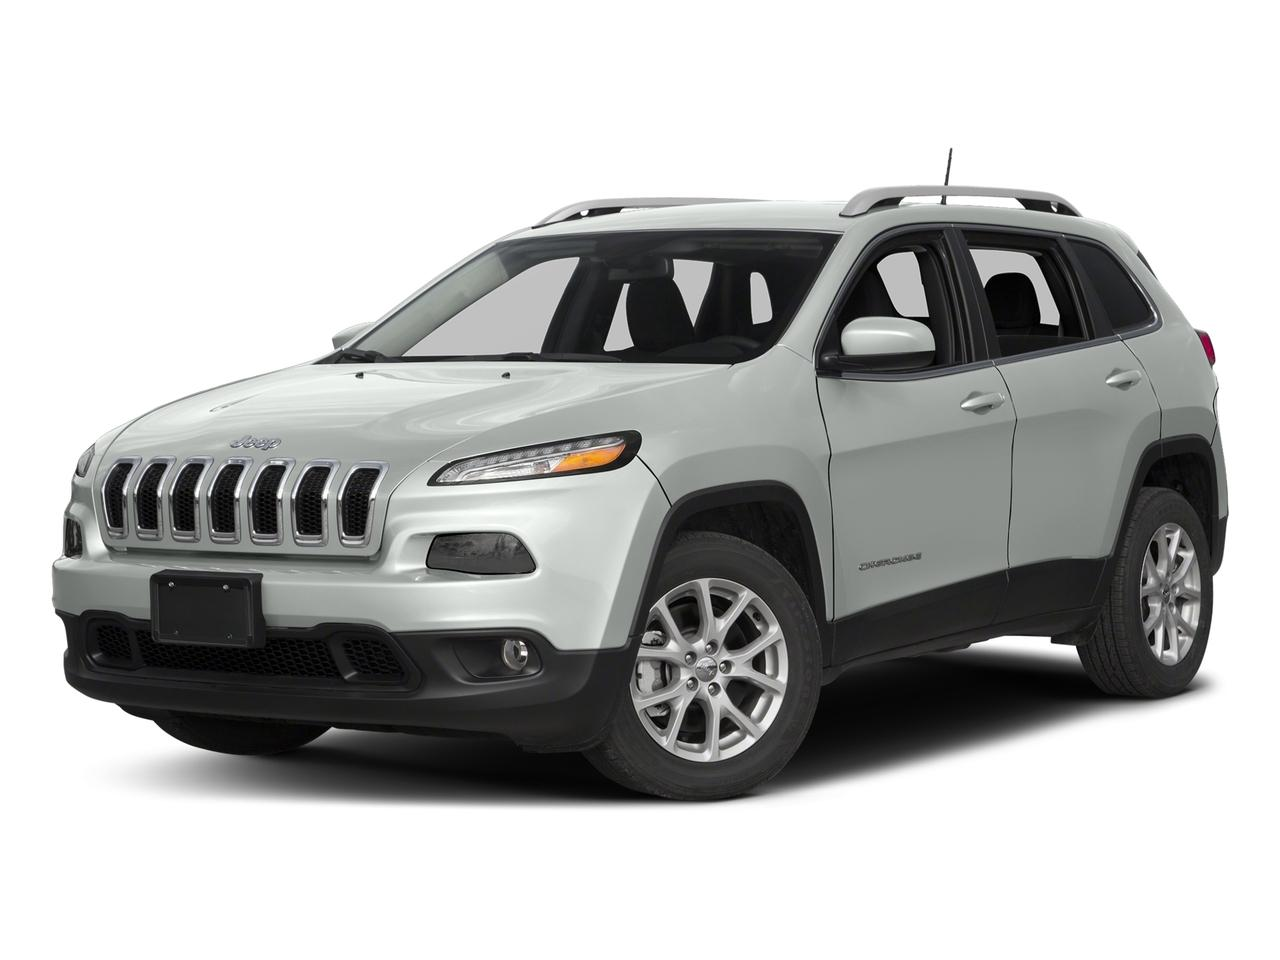 2016 Jeep Cherokee Vehicle Photo in Killeen, TX 76541